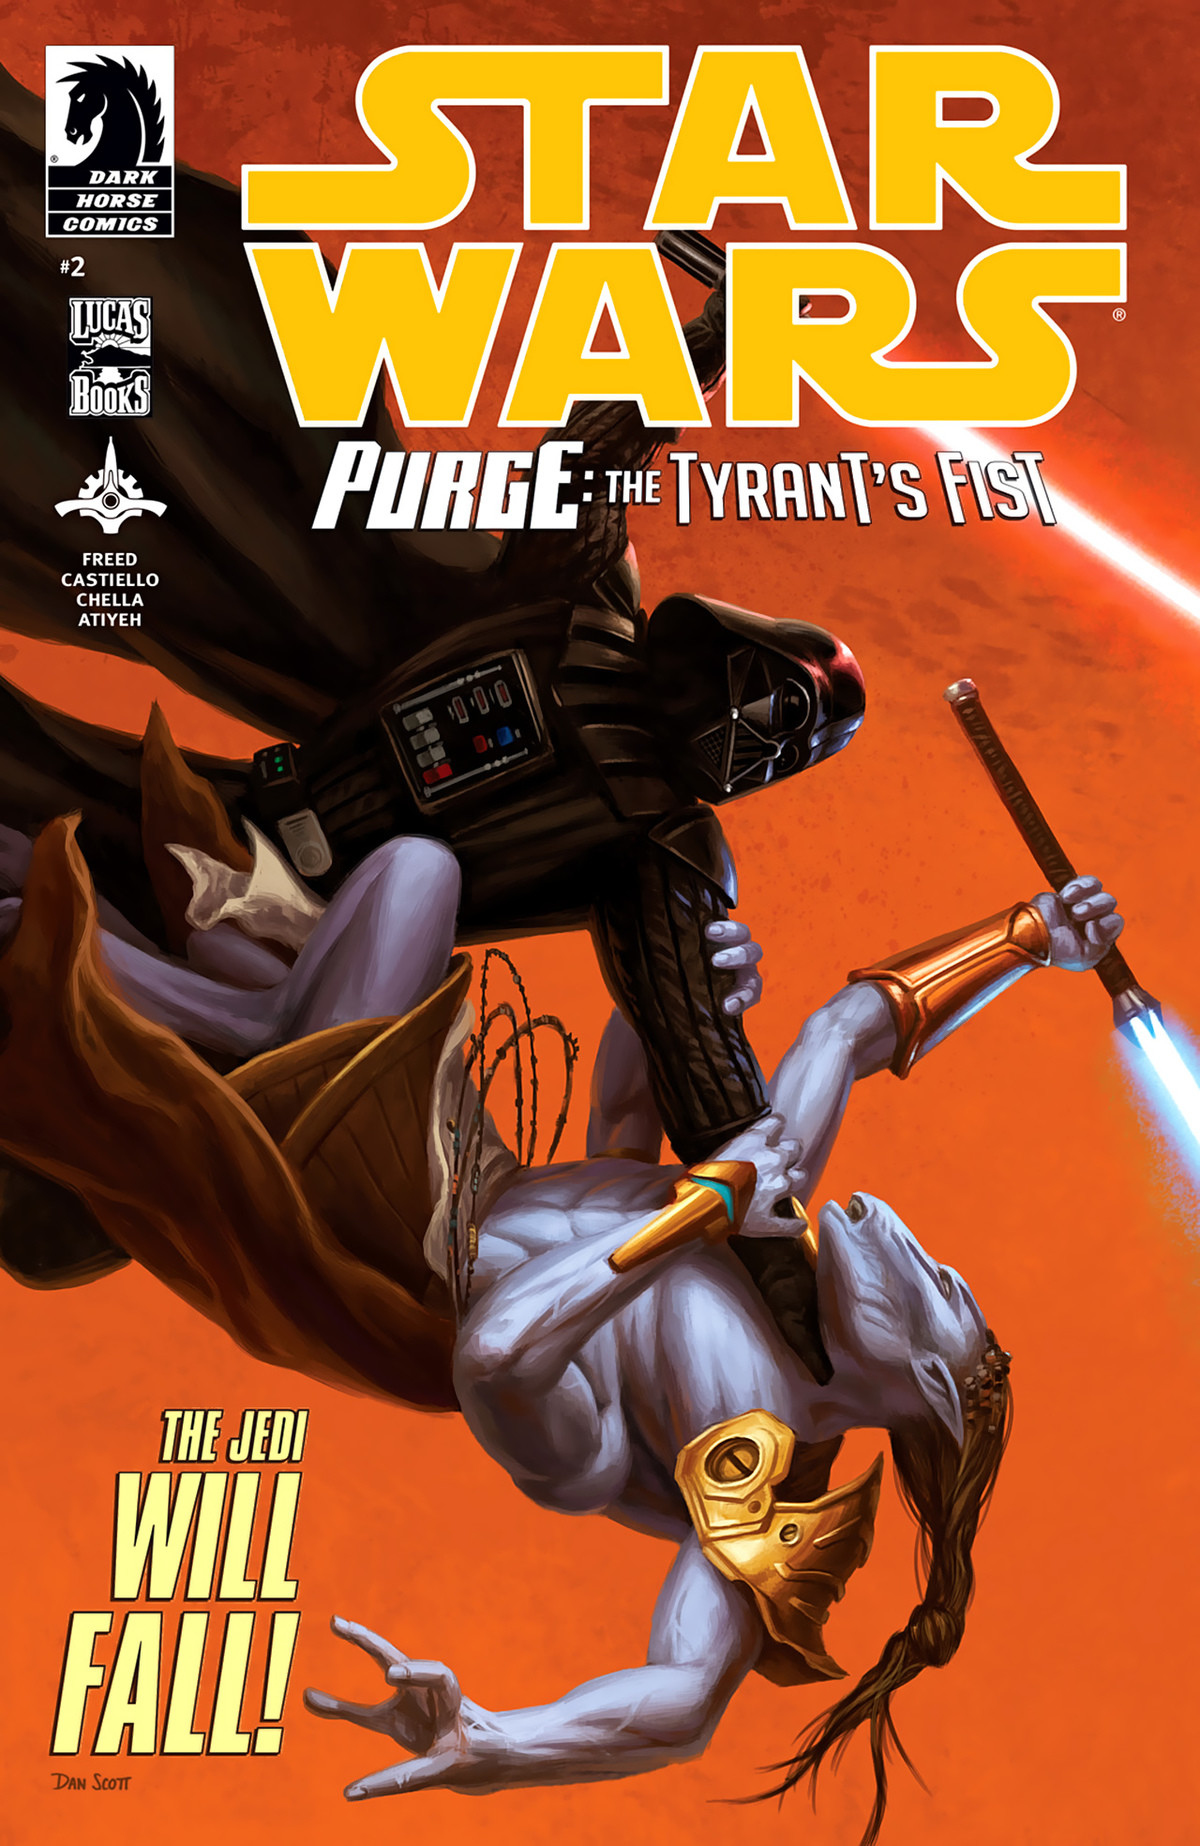 Star Wars : Purge - The Tyrant's Fist (2012) #2. .